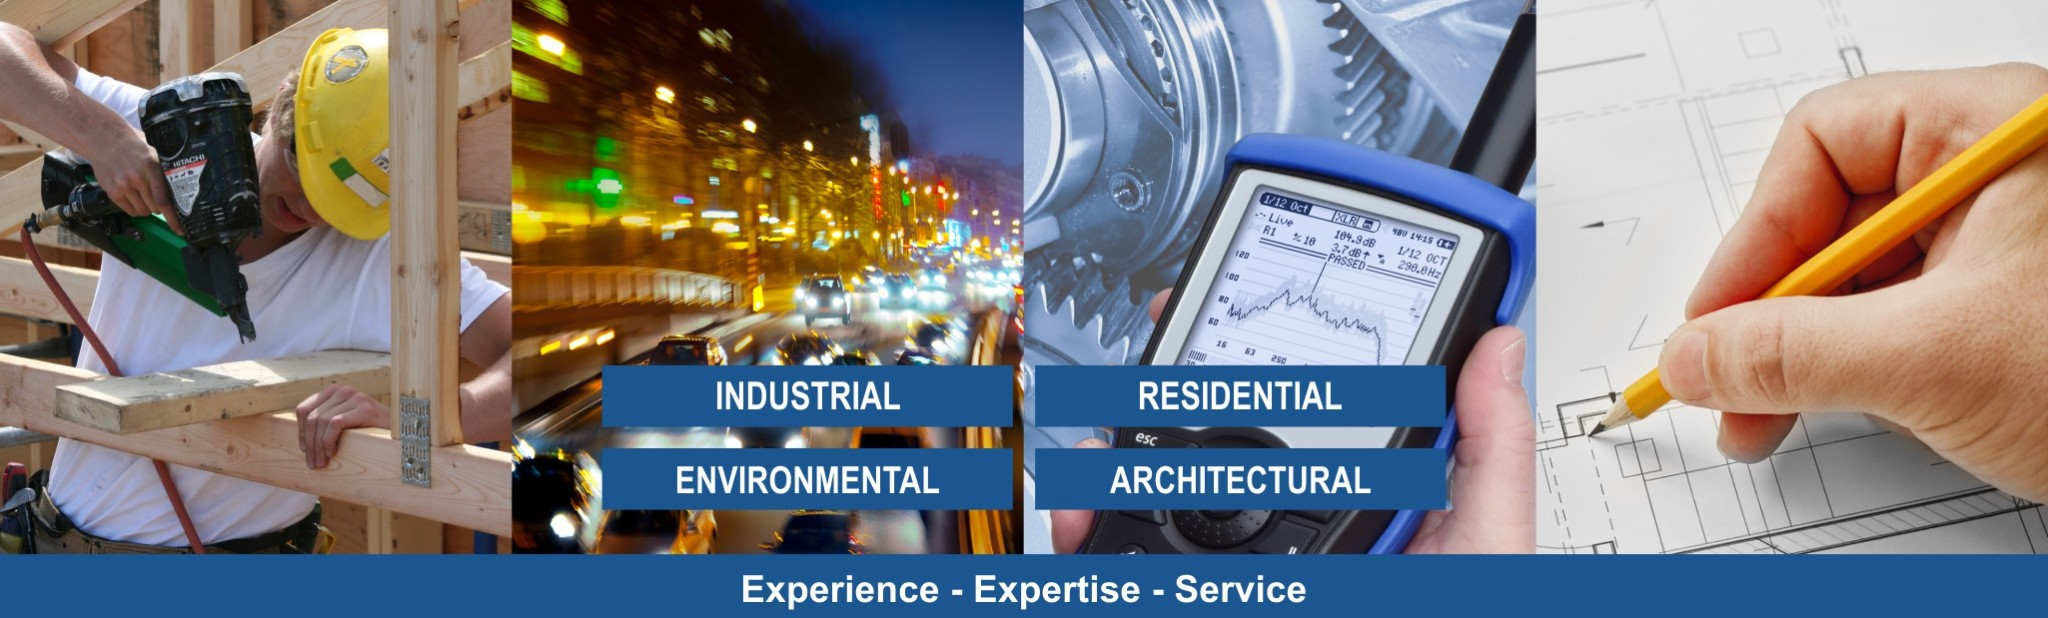 Industrial, Residential & Architectural